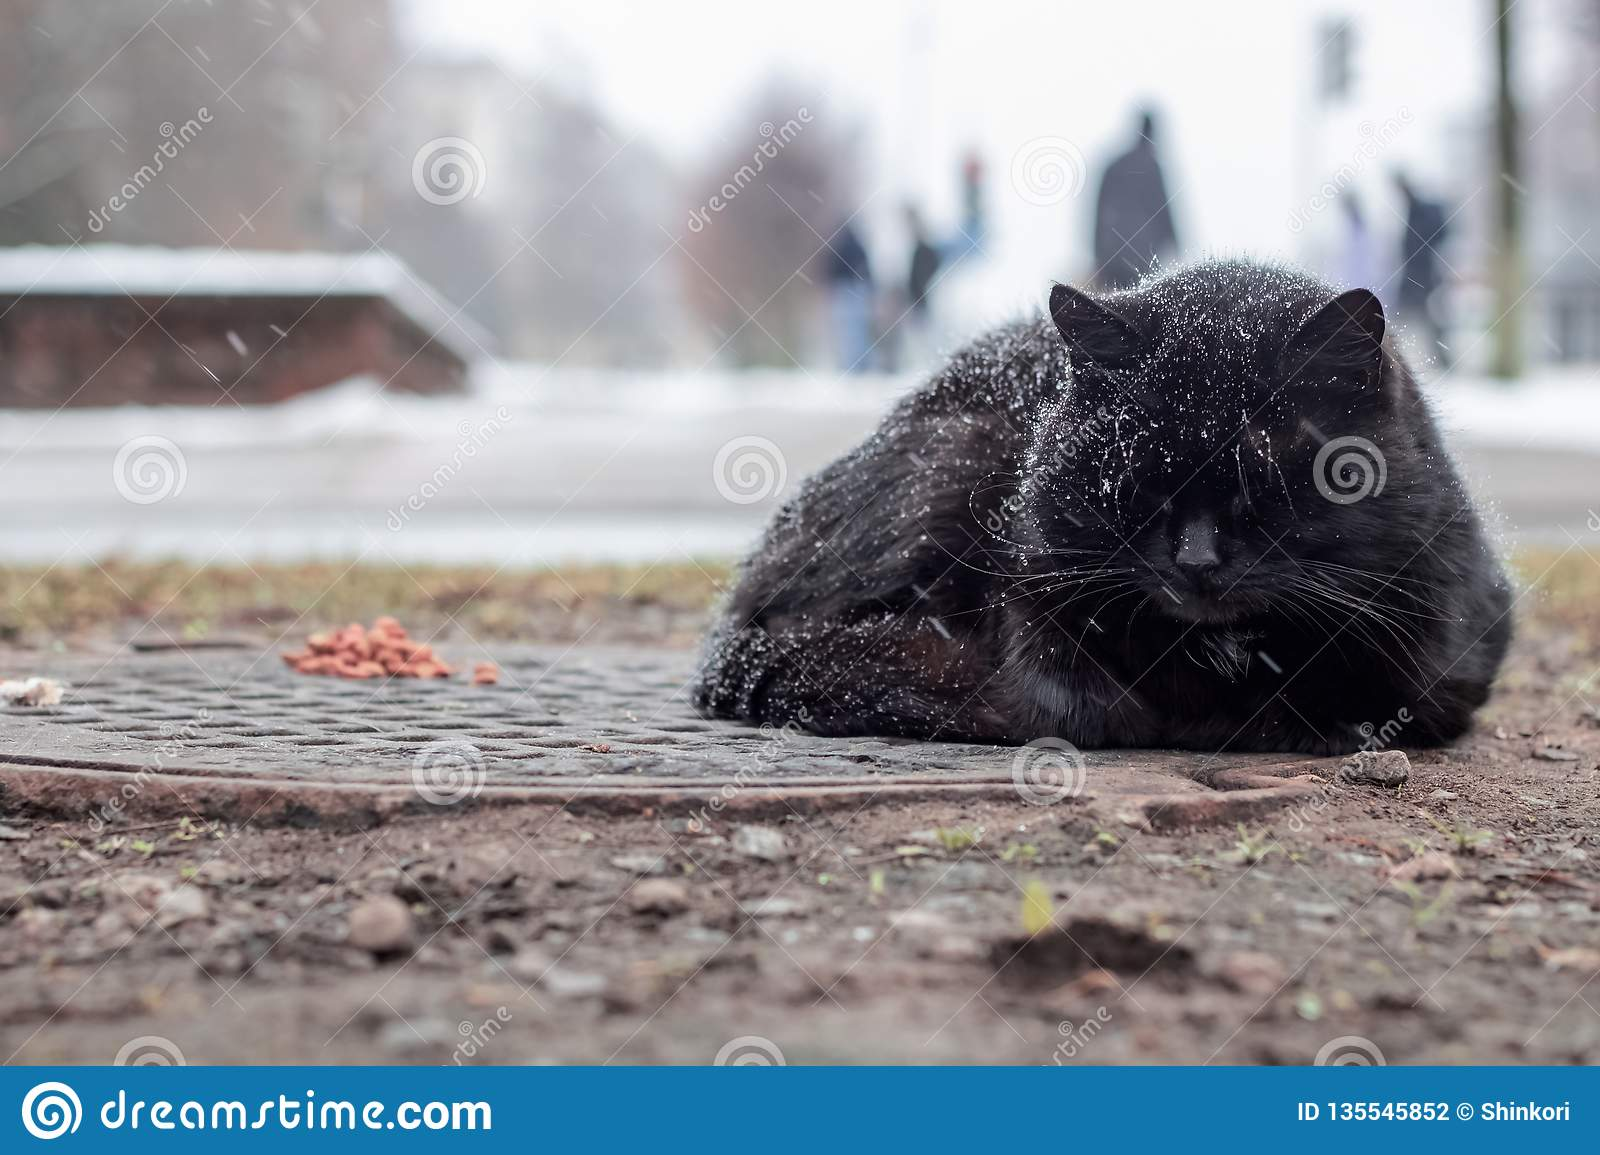 Homeless black cat sleeping under the snow